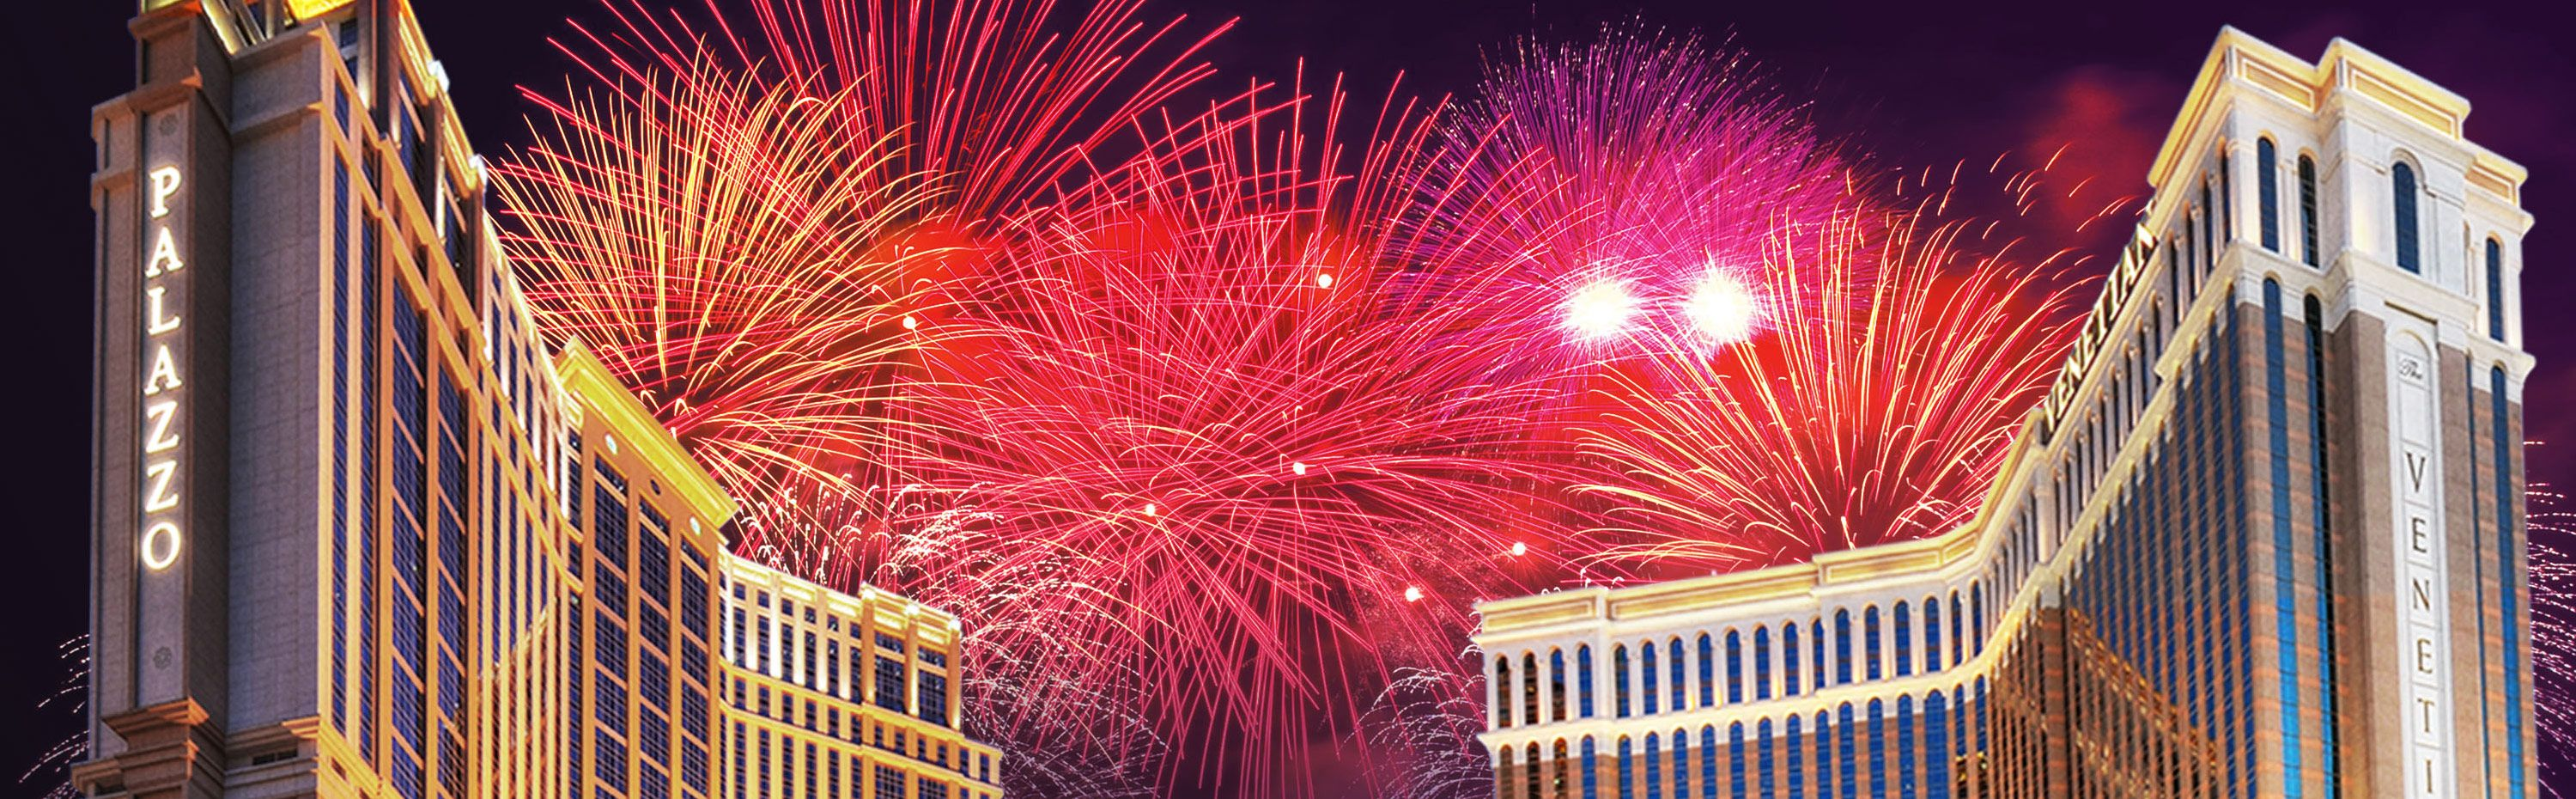 Las Vegas New Years Eve Vegas new years, New years eve